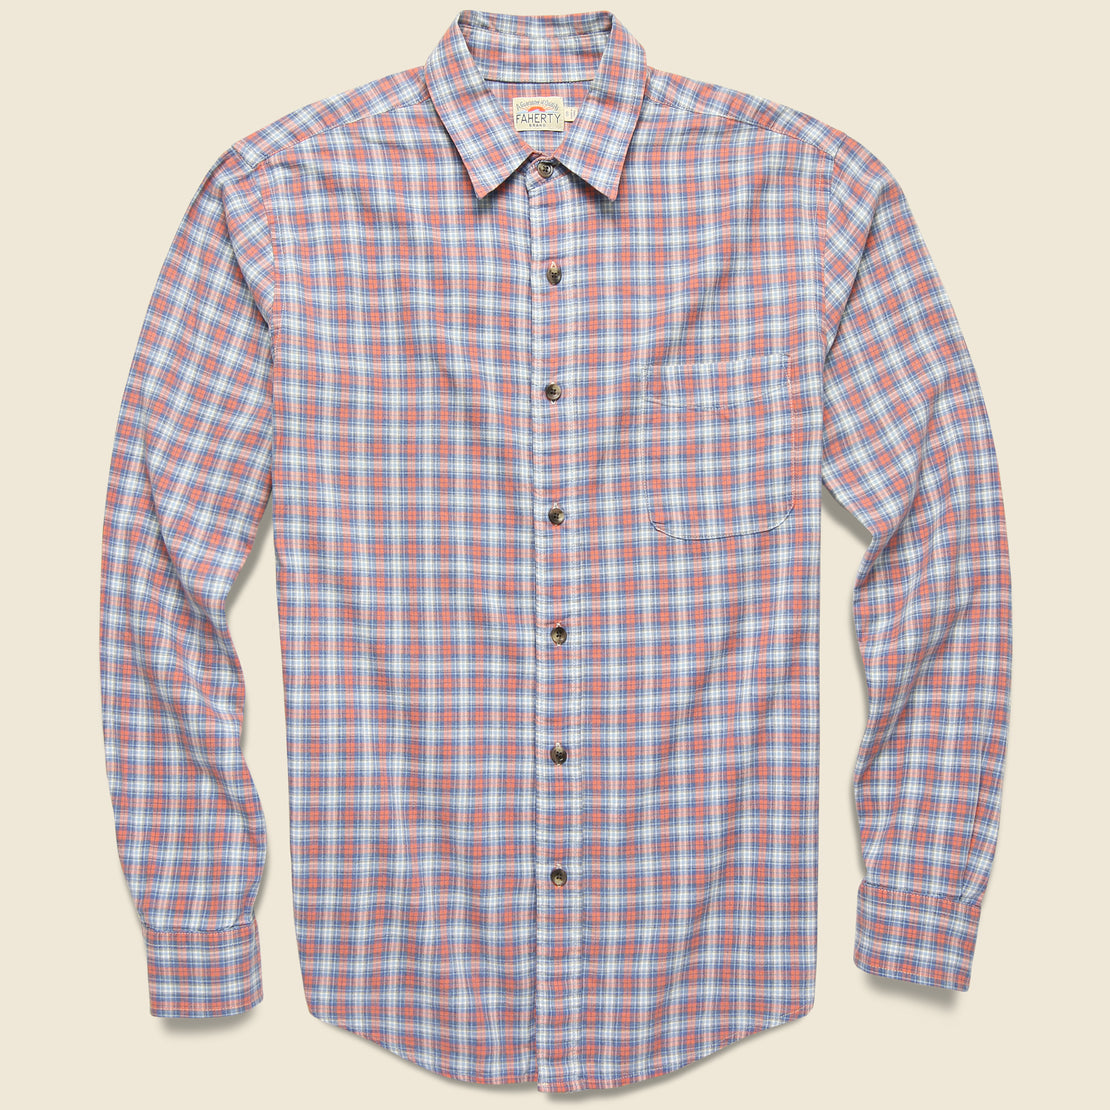 Faherty Movement Melange Shirt - Half Moon Bay Plaid